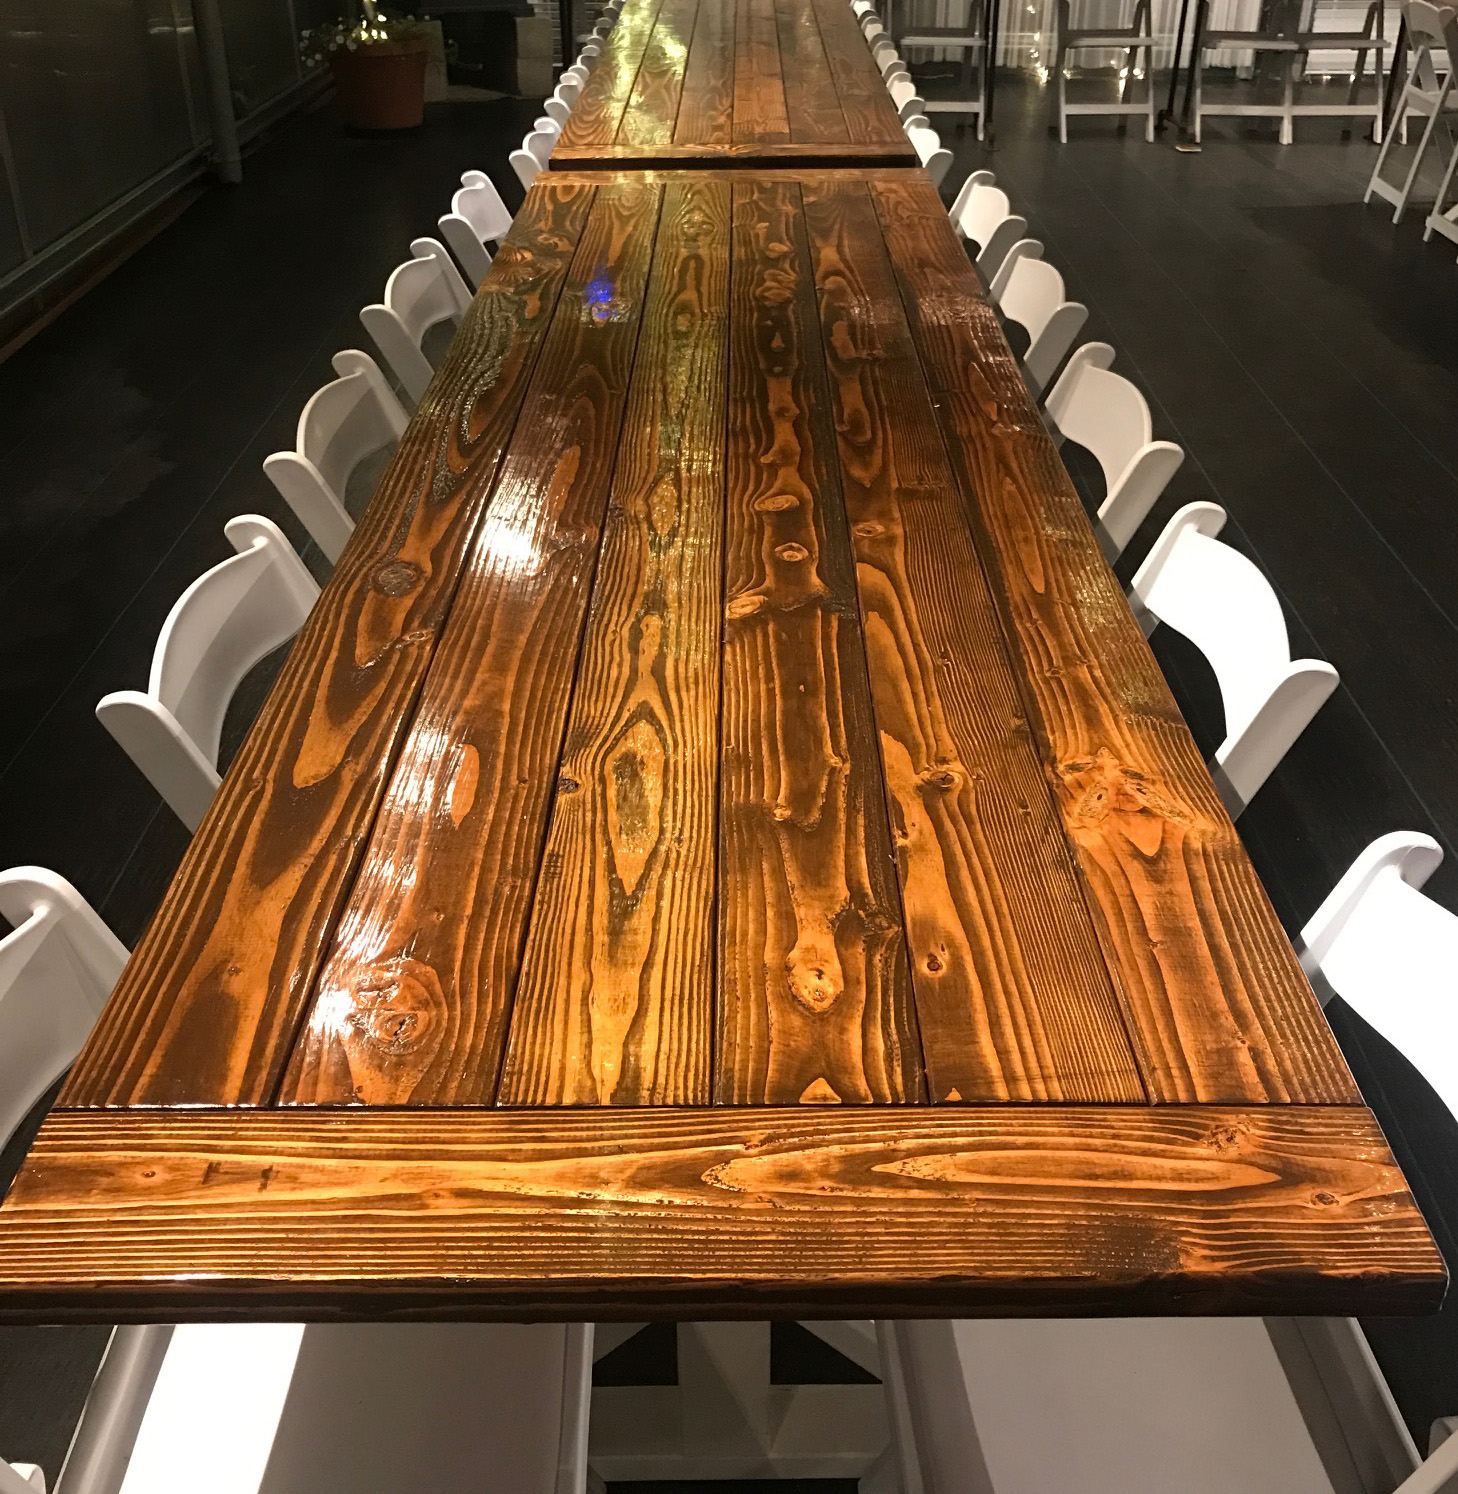 Glowing natural wood tables